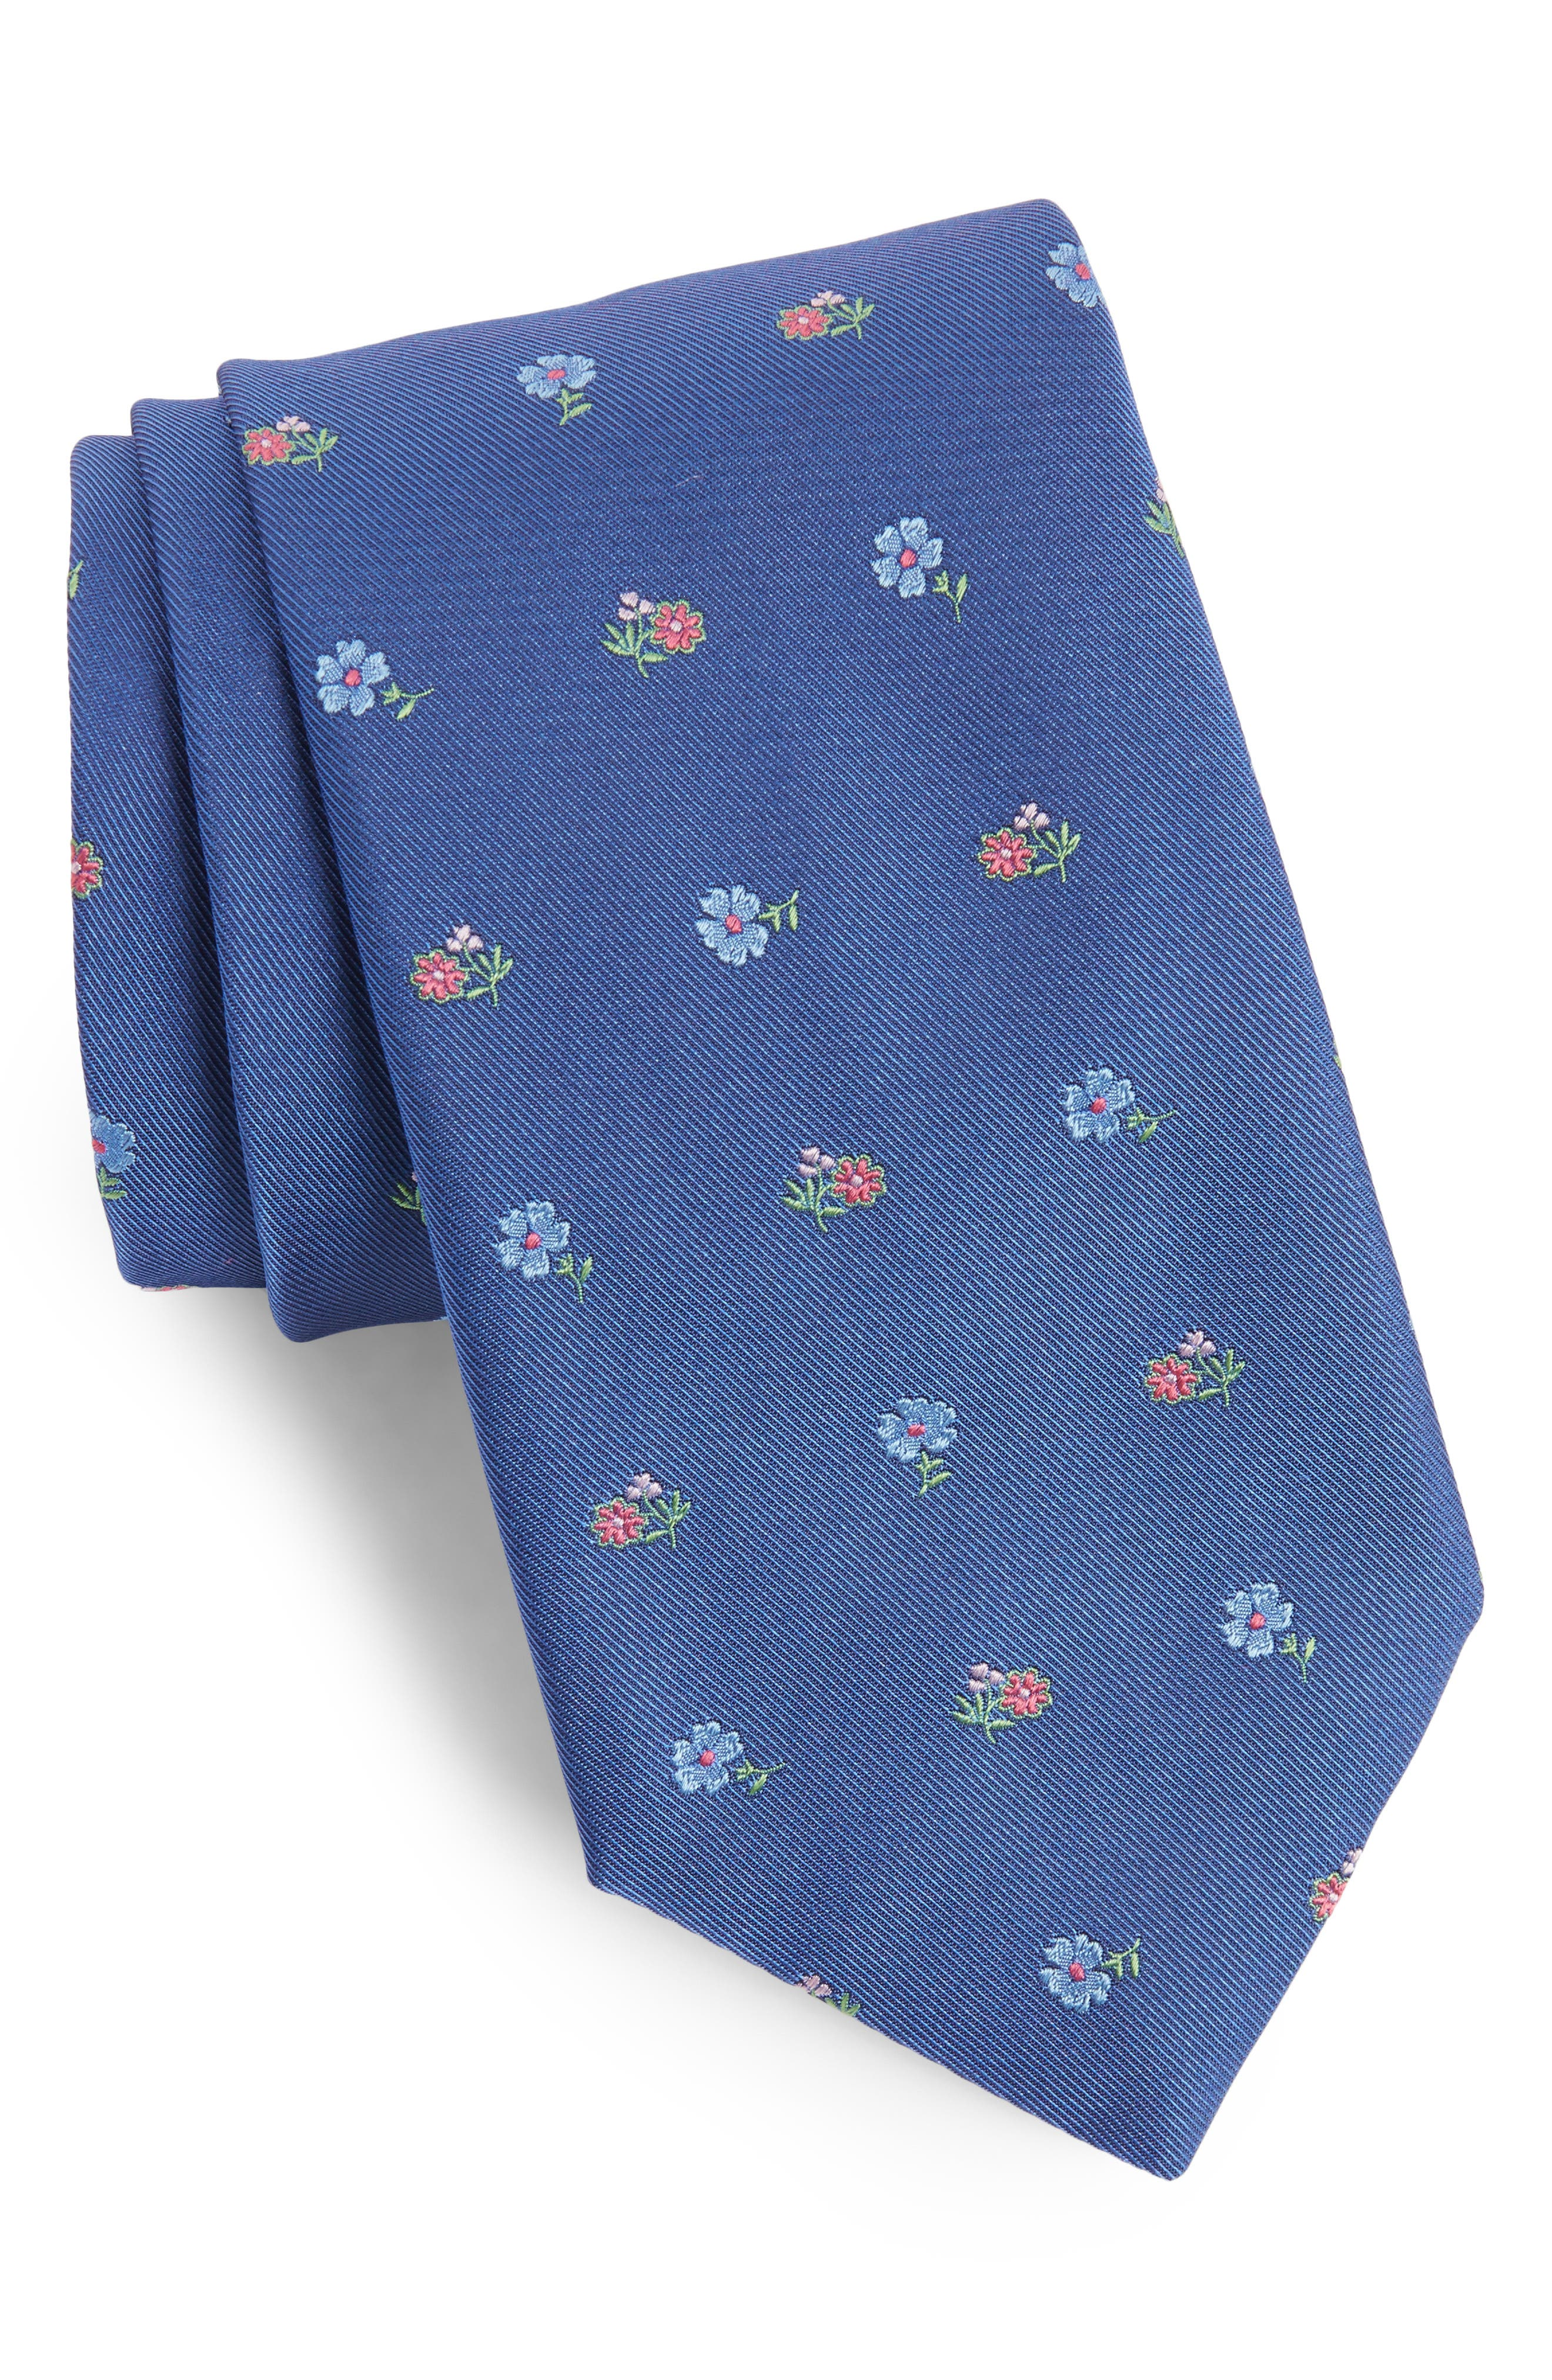 Alternate Image 1 Selected - Canali Floral Jacquard Silk Tie